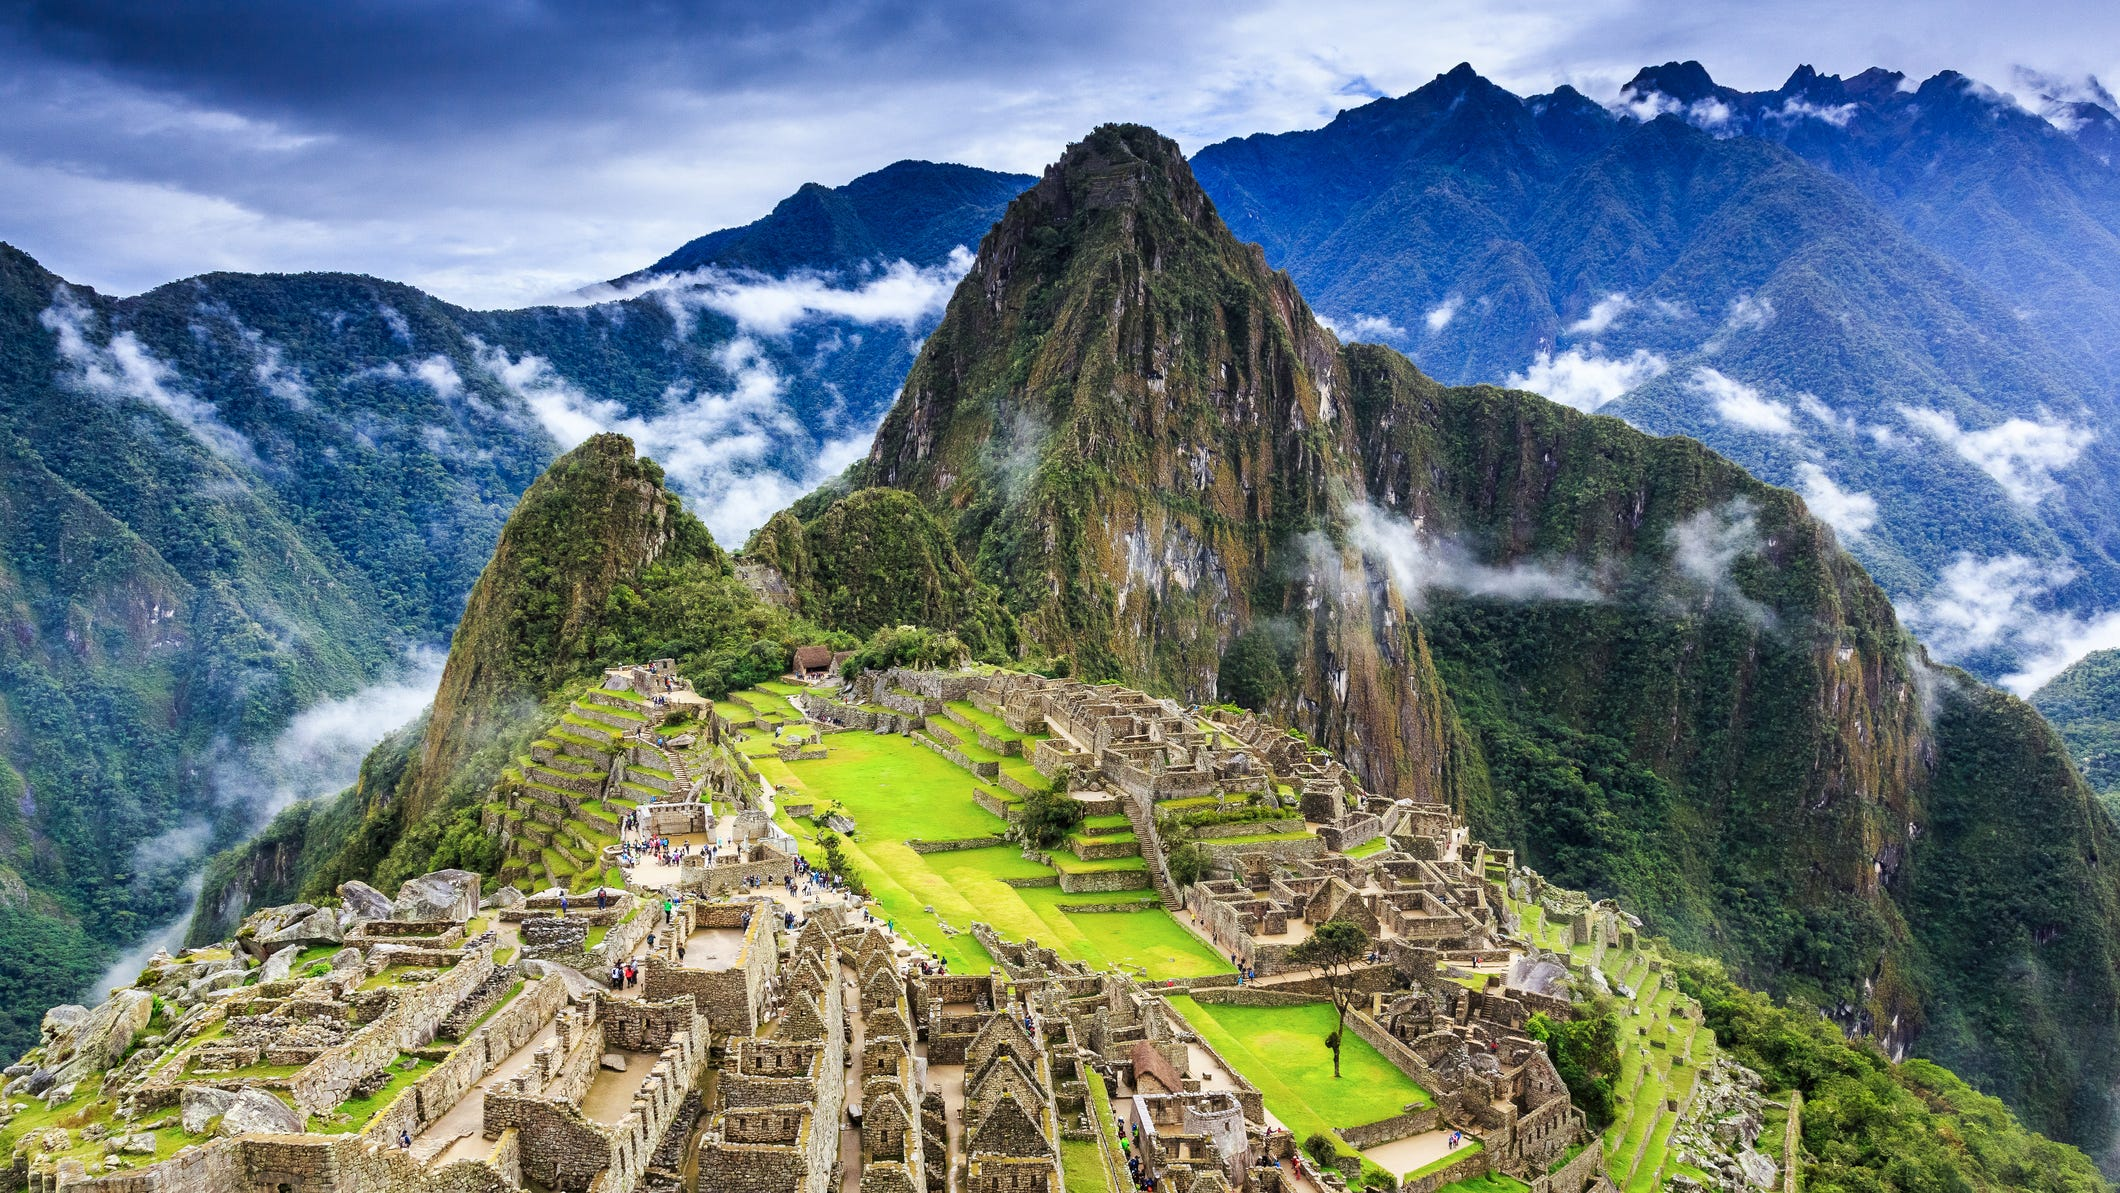 Machu Picchu: Peru opens famous site for one stranded Japanese tourist